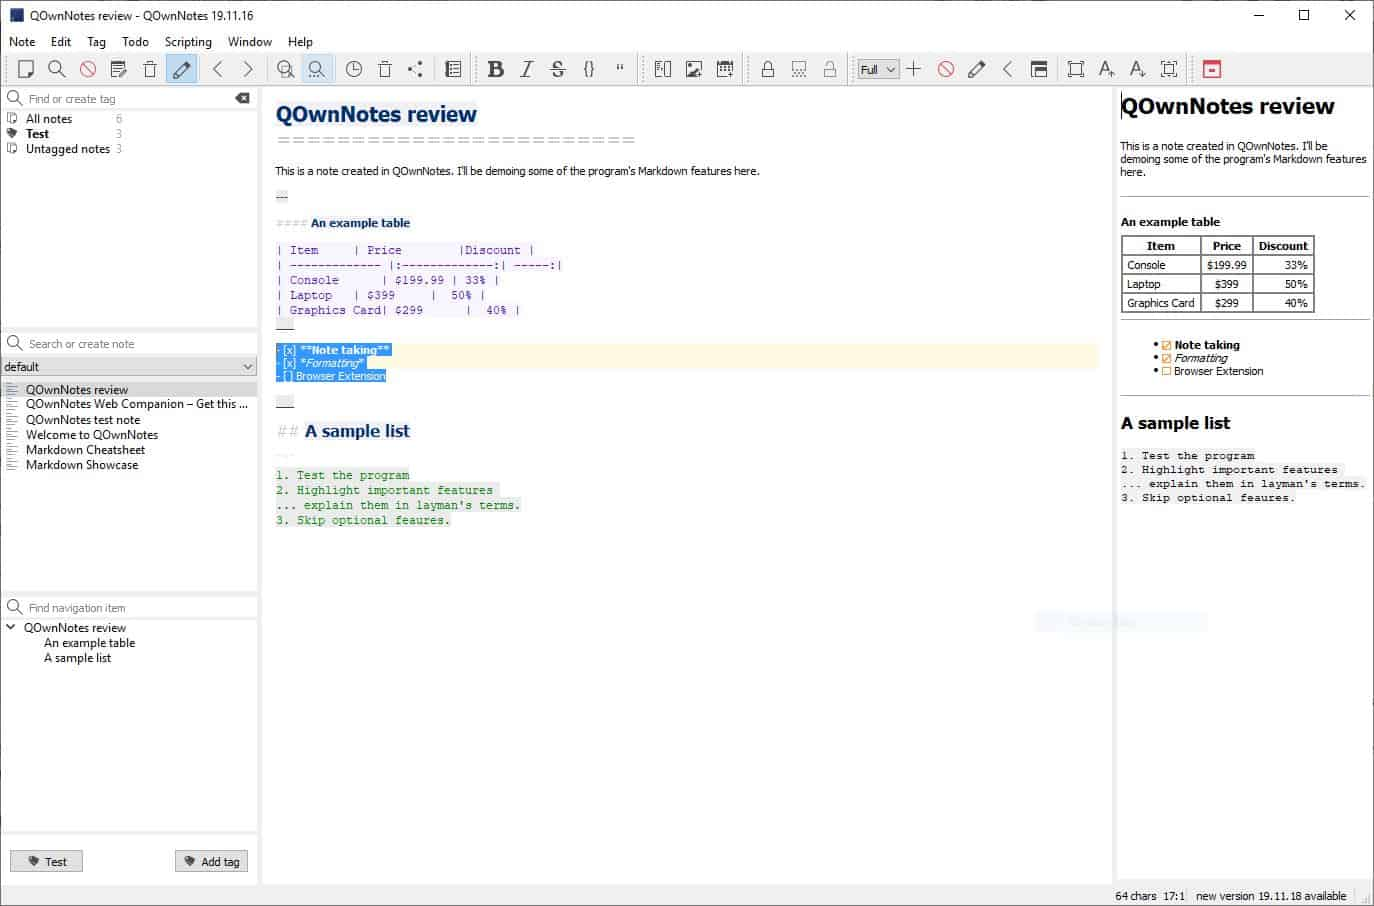 QOwnNotes is an open source note taking tool that supports Markdown